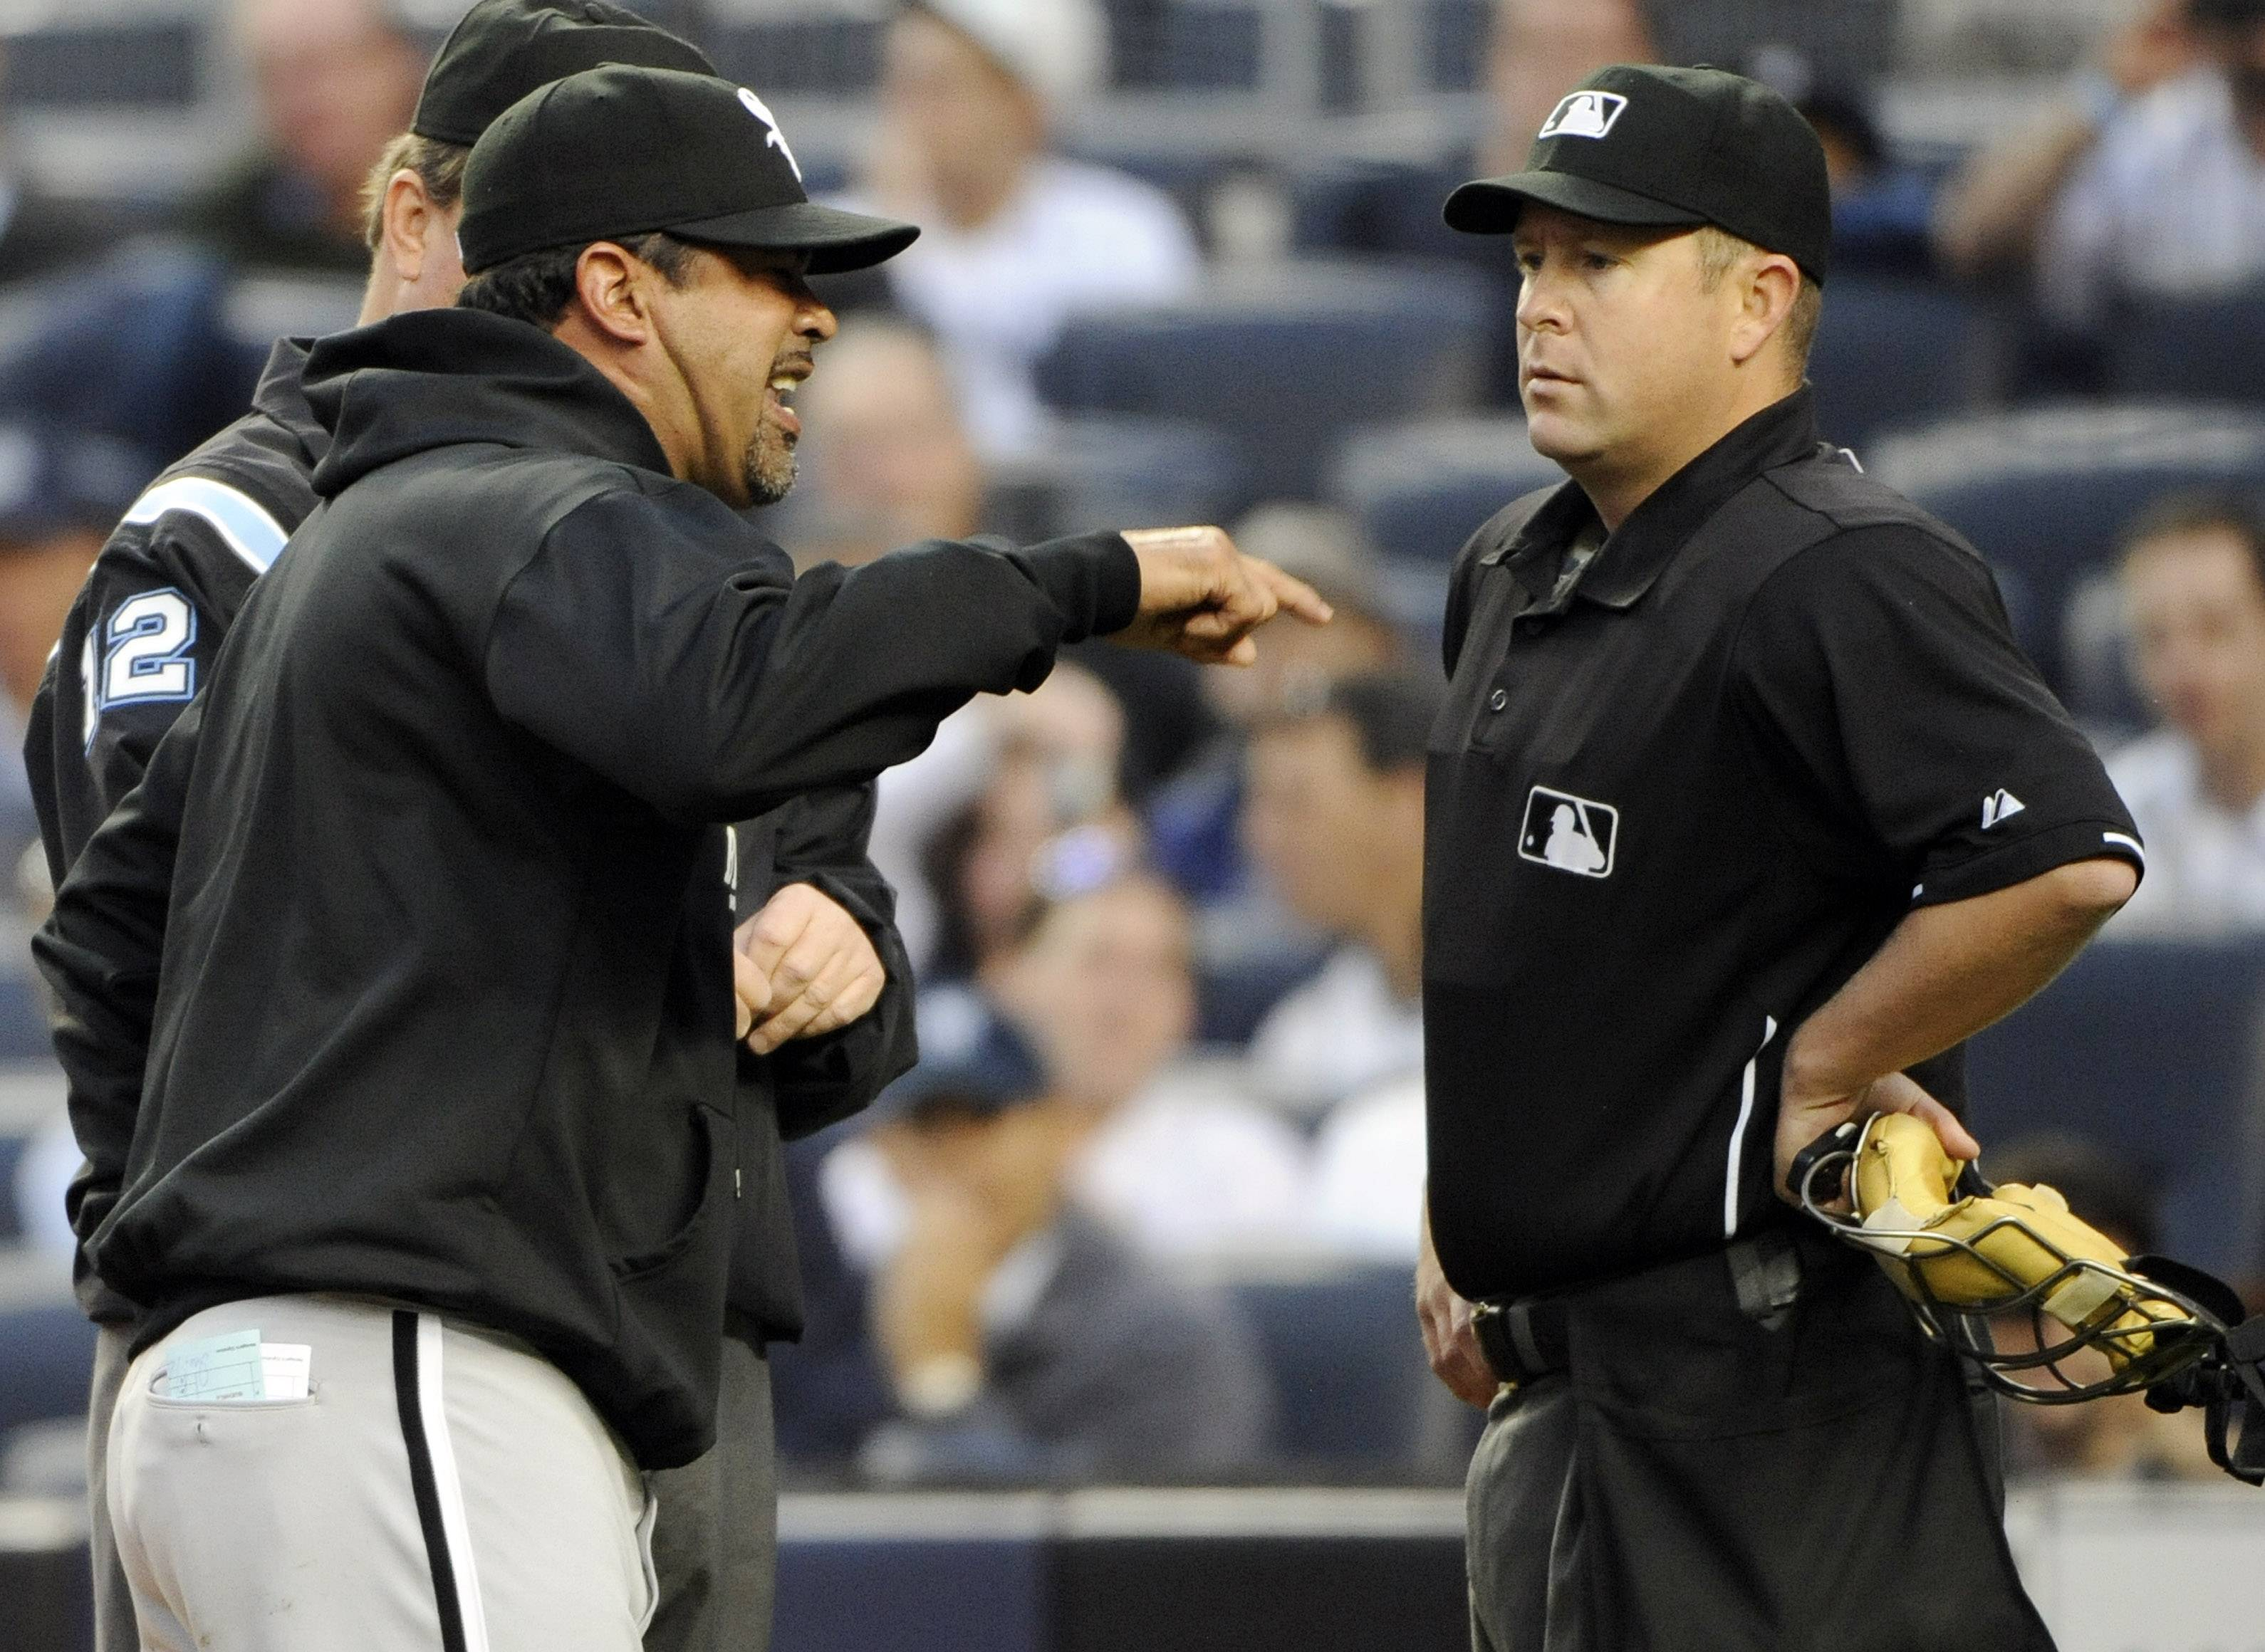 Ozzie Guillen argues Wednesday with home plate umpire Todd Tichenor during the first inning against the New York Yankees at Yankee Stadium.